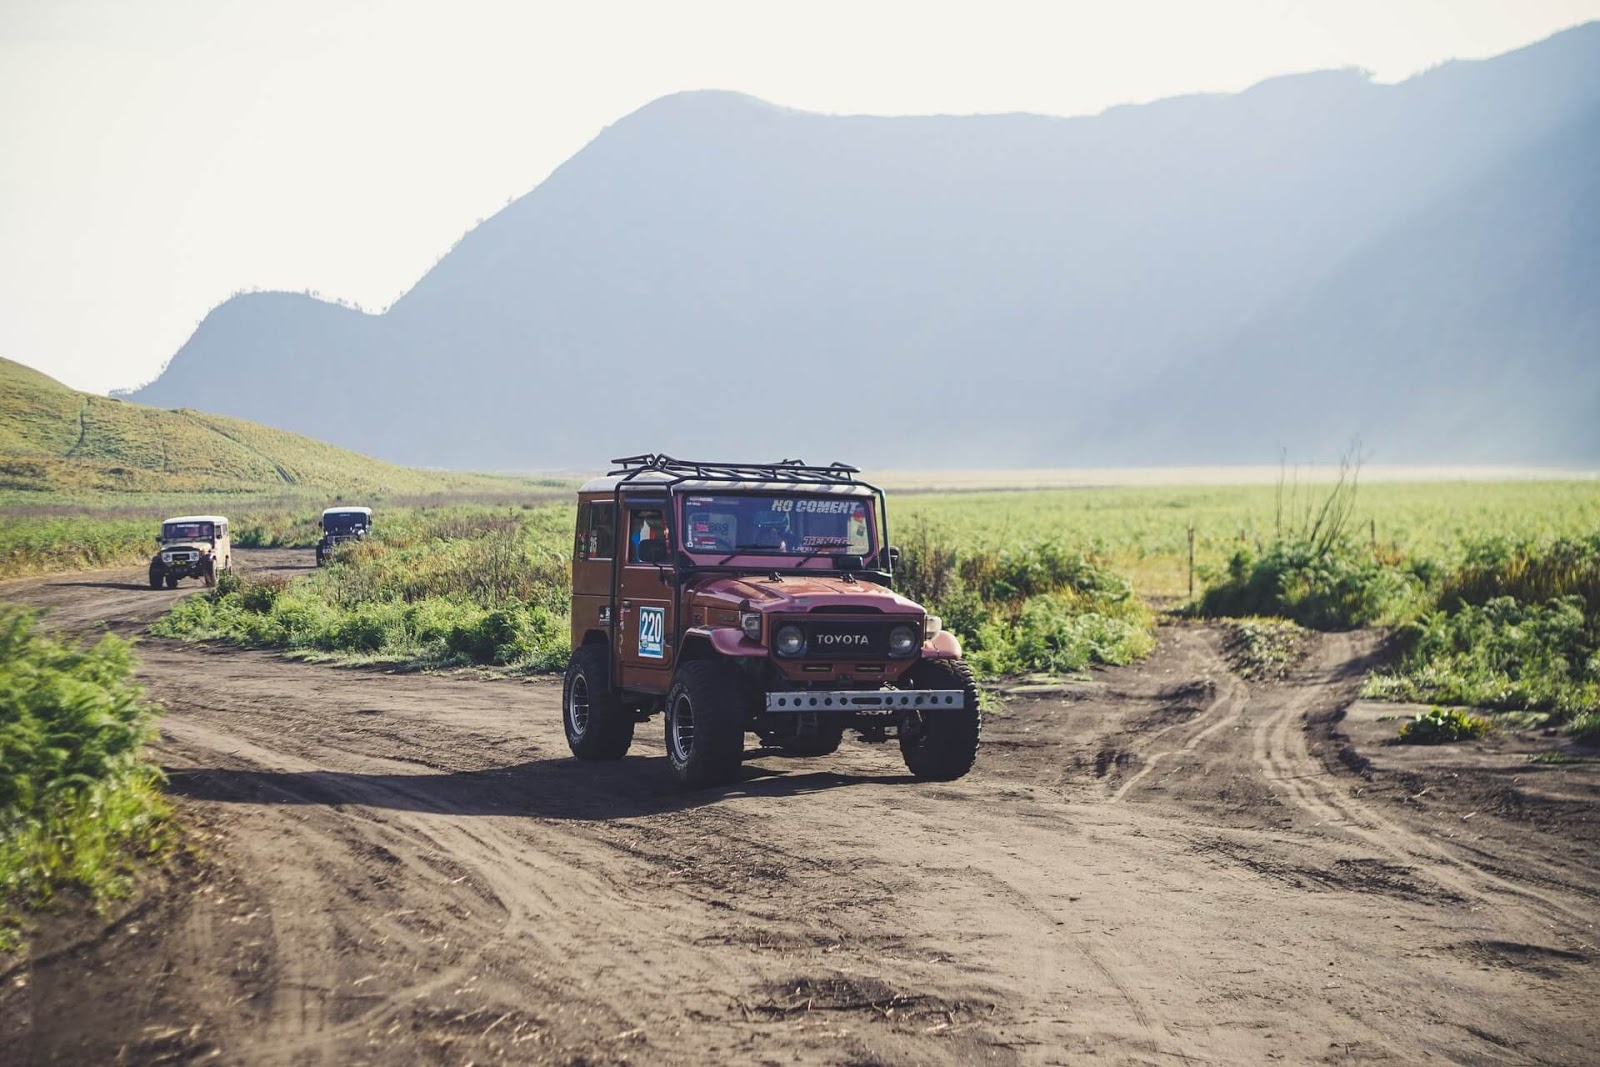 Toyota jeeps, off-roading , three toyota jeeps traveling on a gravel road